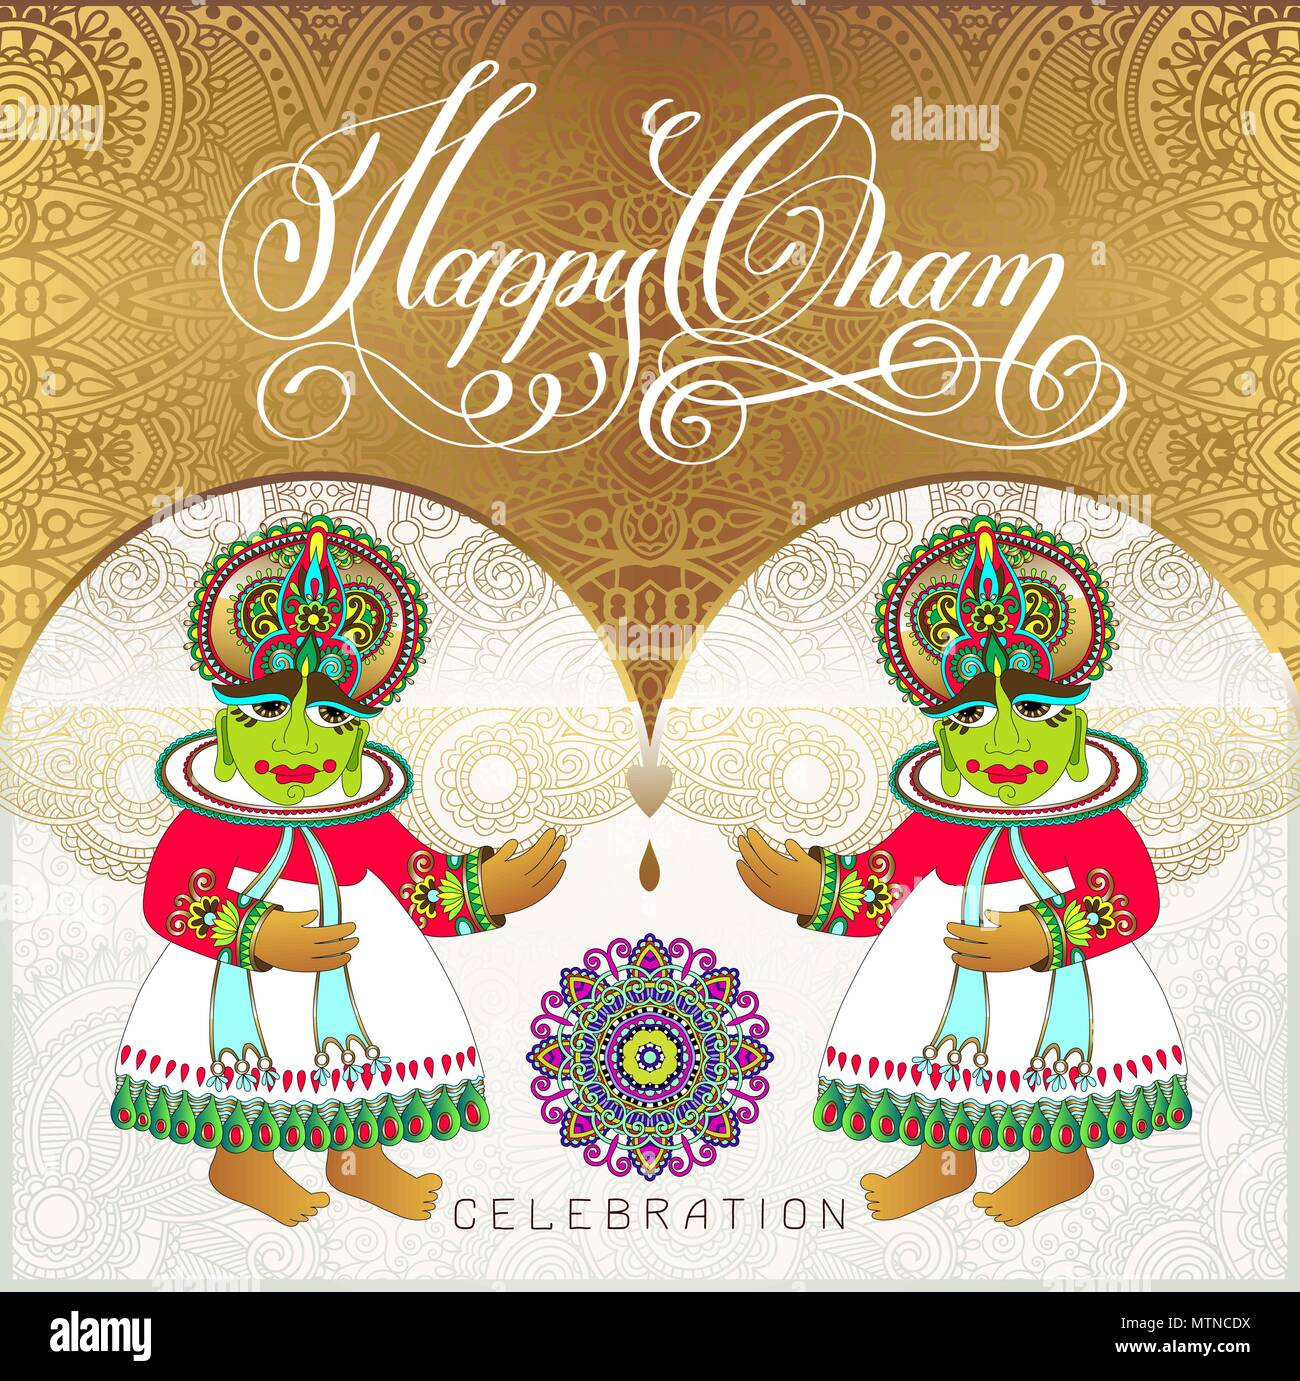 Happy Onam Golden Greeting Card Design With Two Traditional Indi